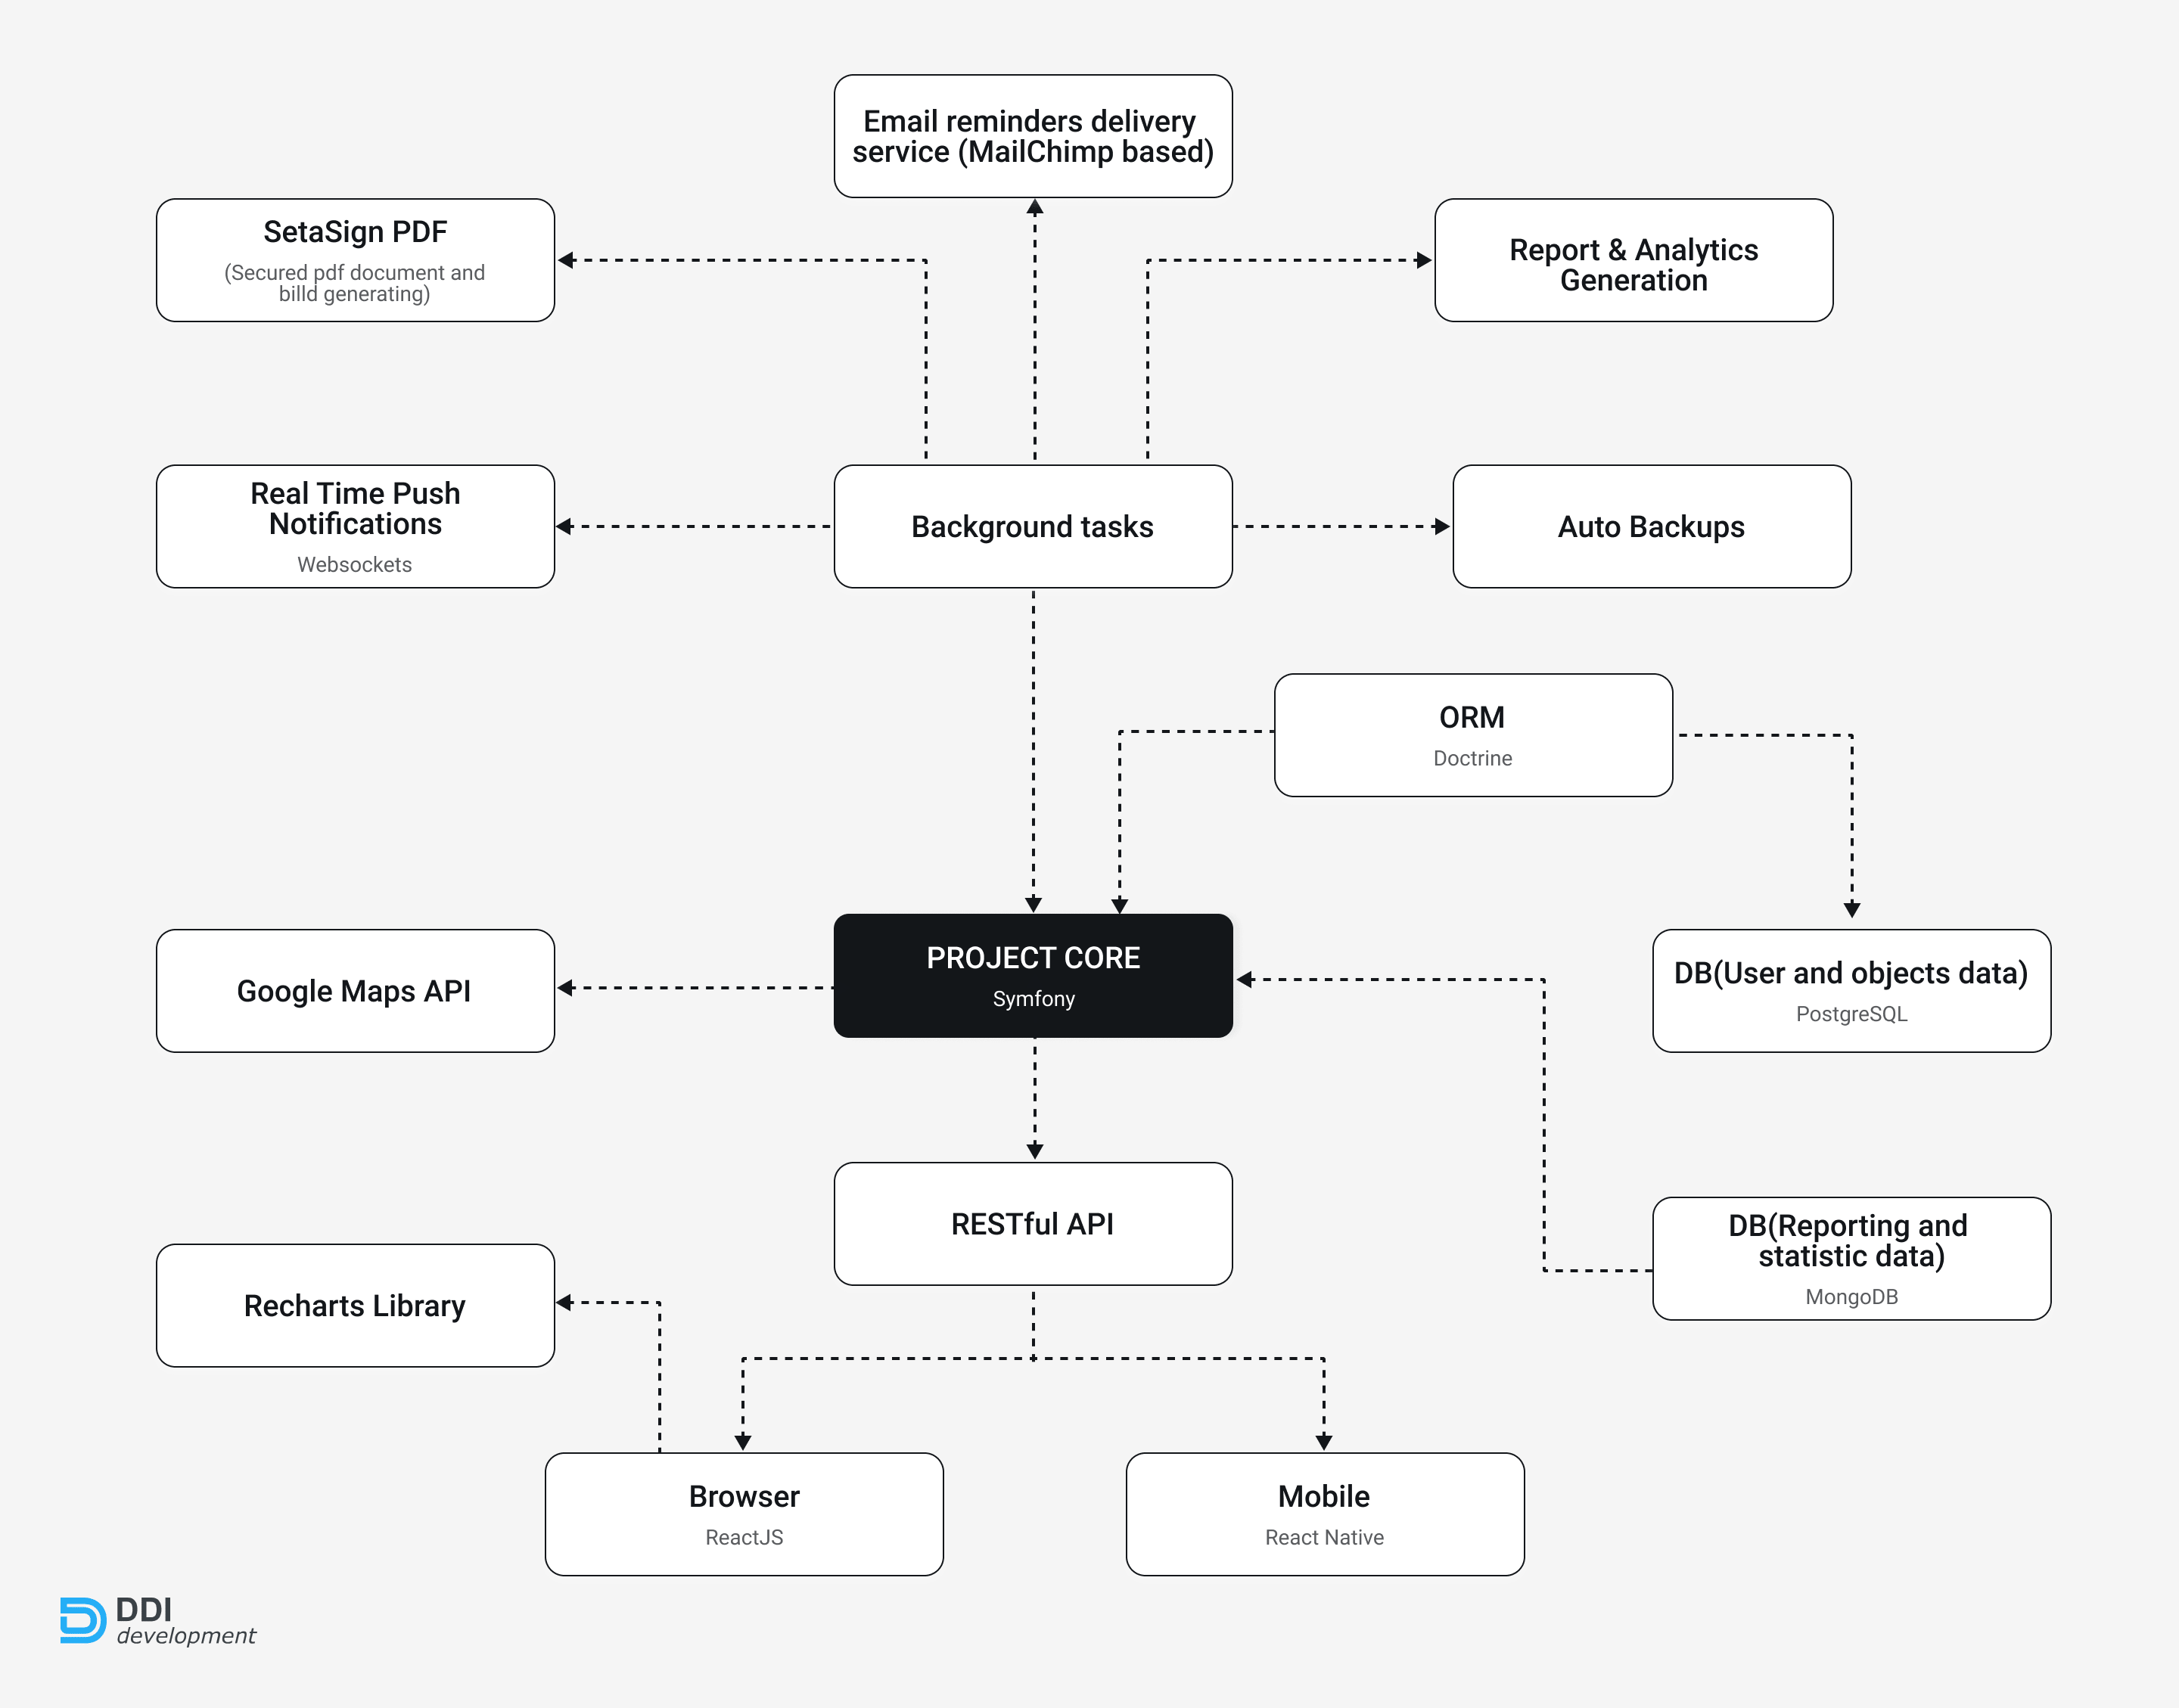 project structure of the fleet management system